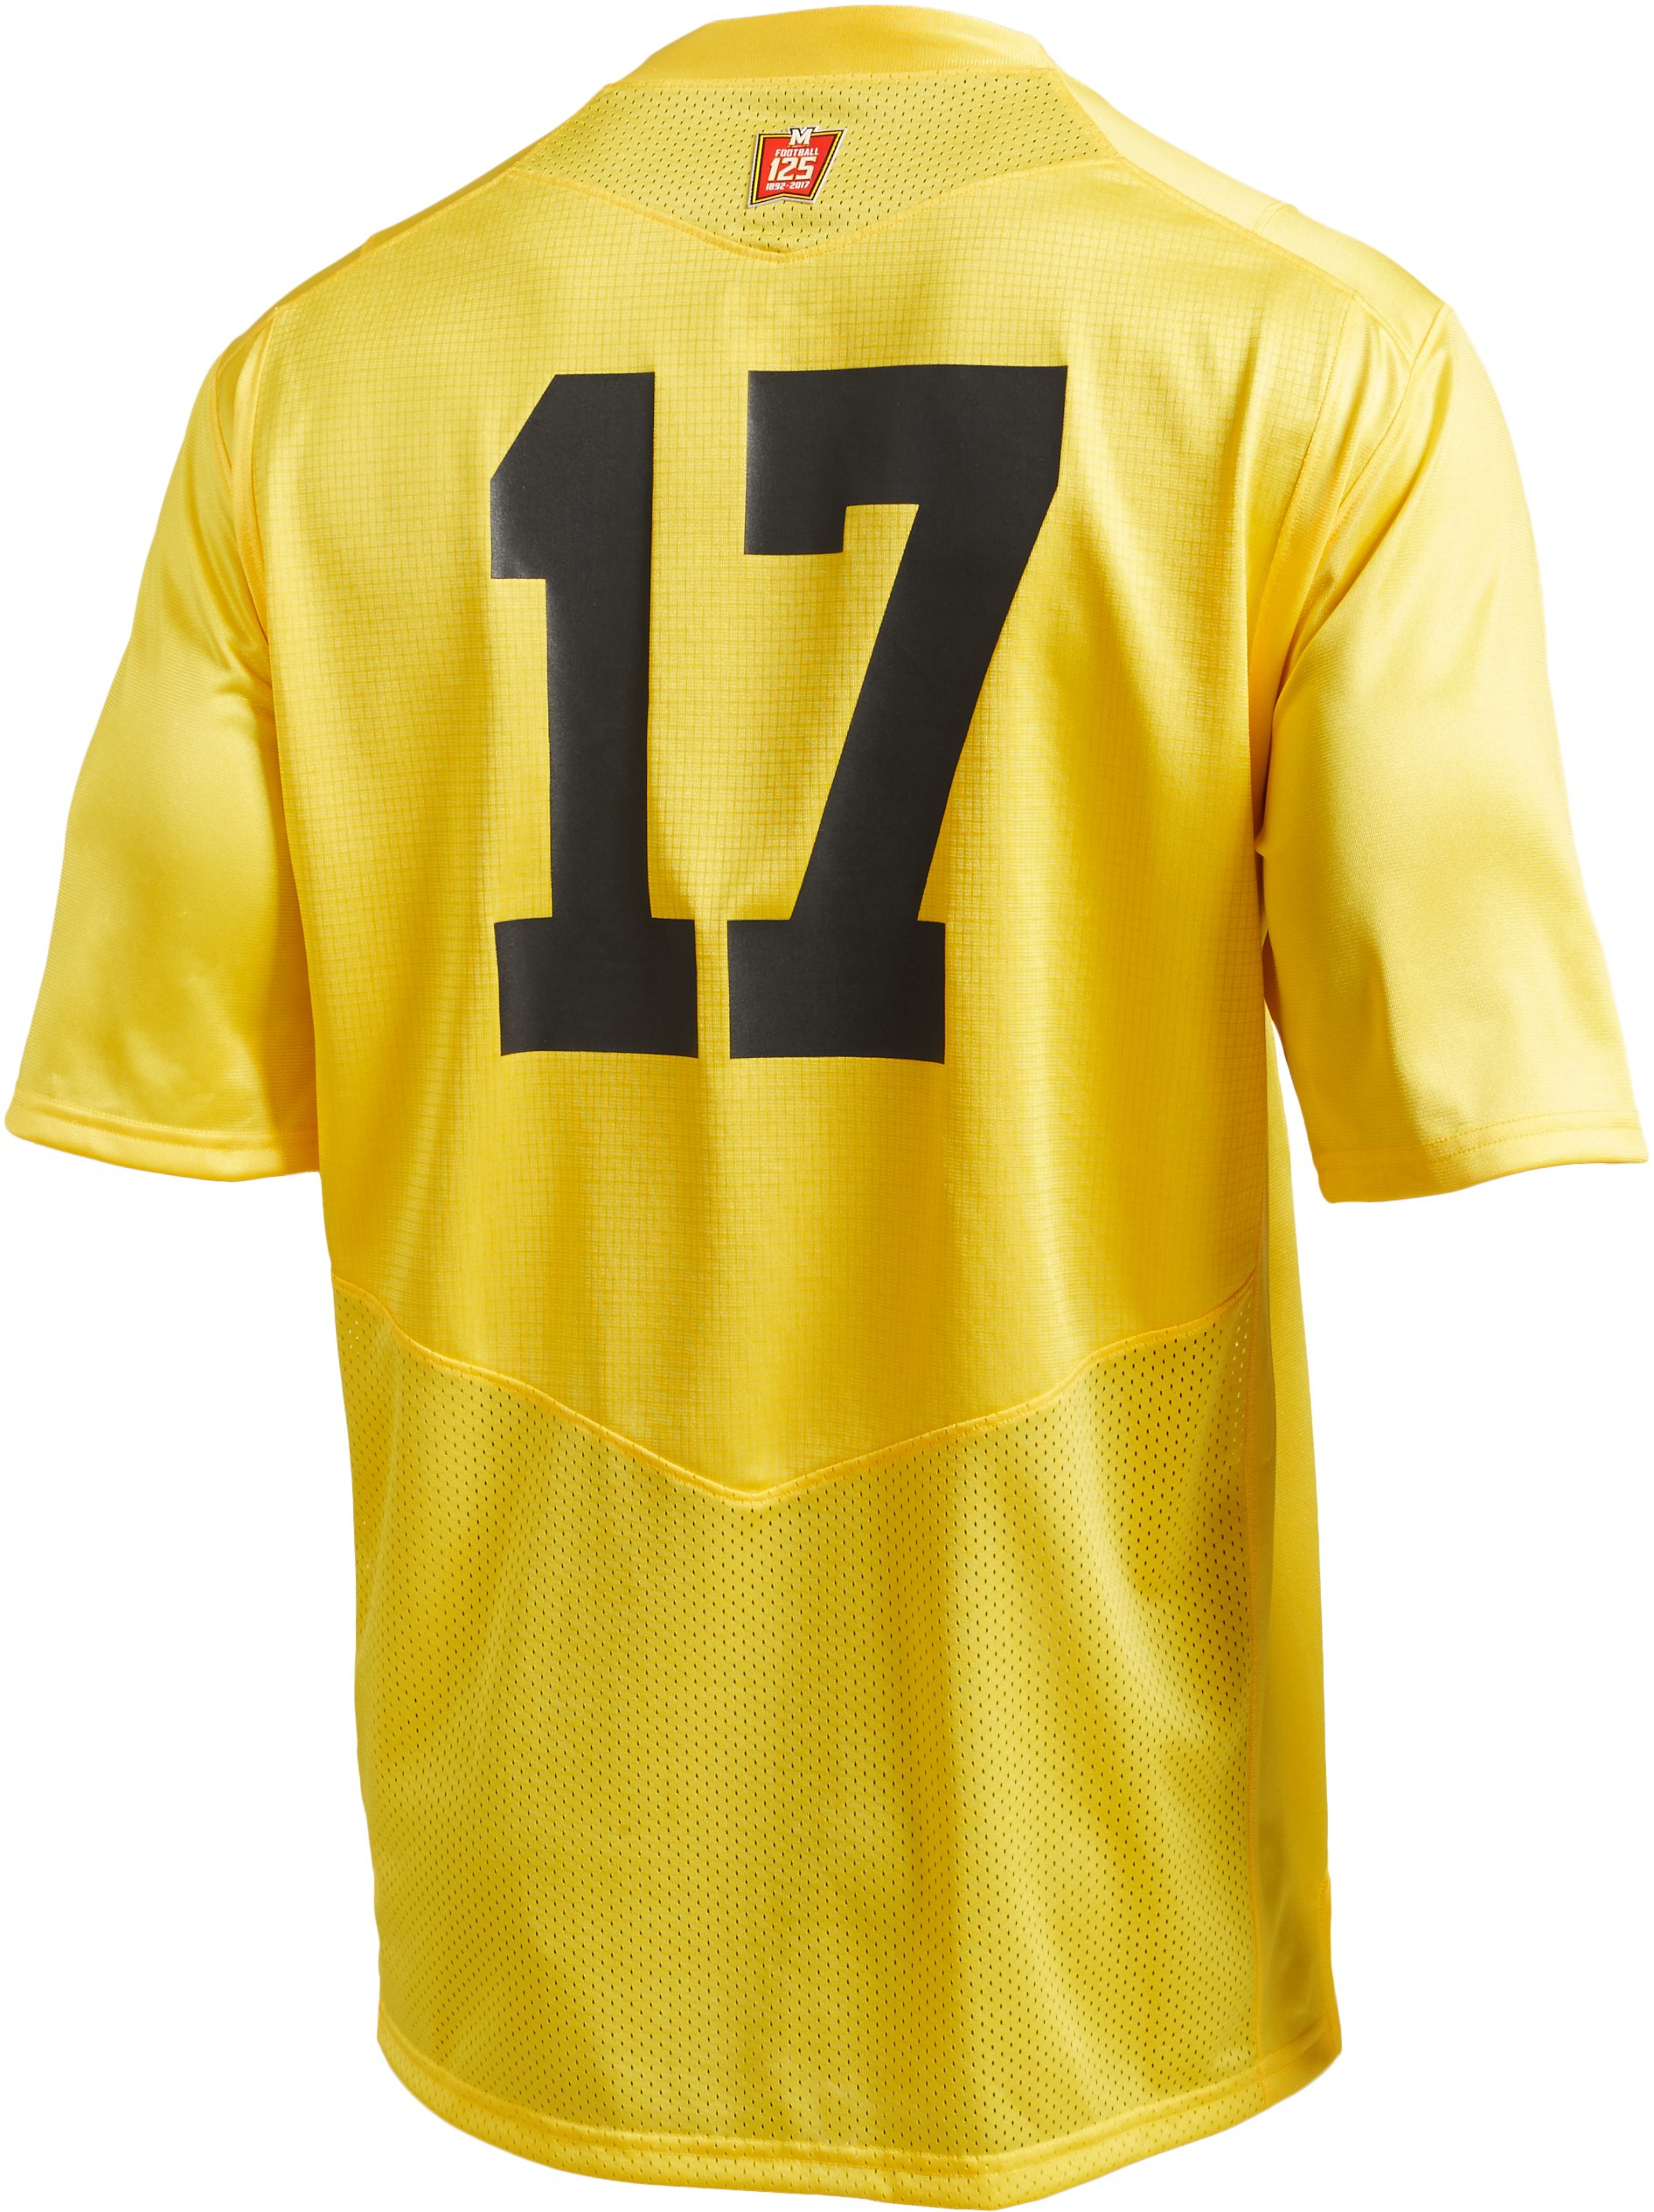 Men's Maryland Replica Jersey, Taxi,